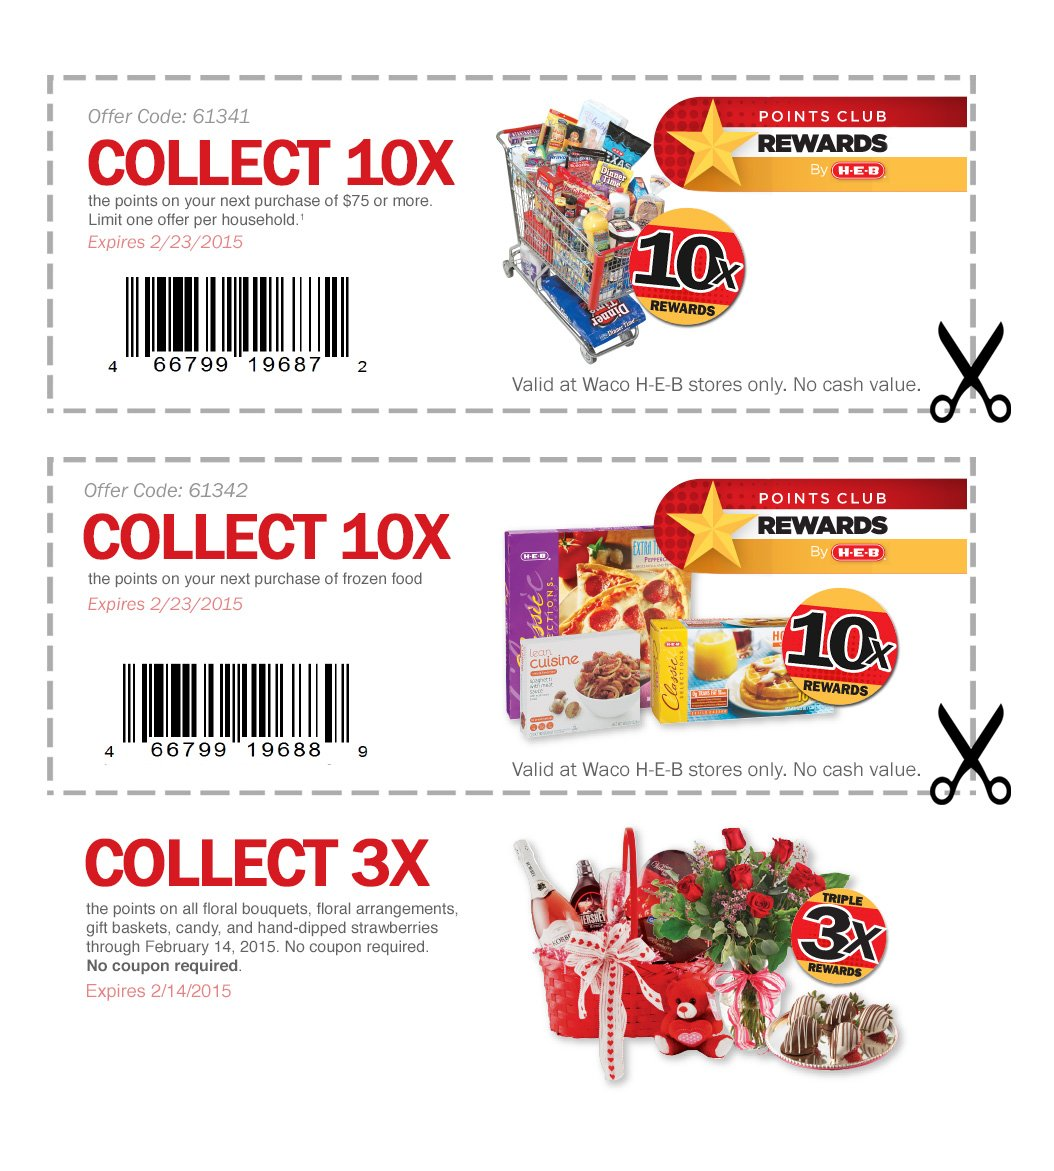 eCoupons are electronic coupons that load onto your grocery store loyalty card. When you purchase the specified items and scan your store card, the eCoupon amount automatically comes off your total during checkout – no paper coupon is needed.